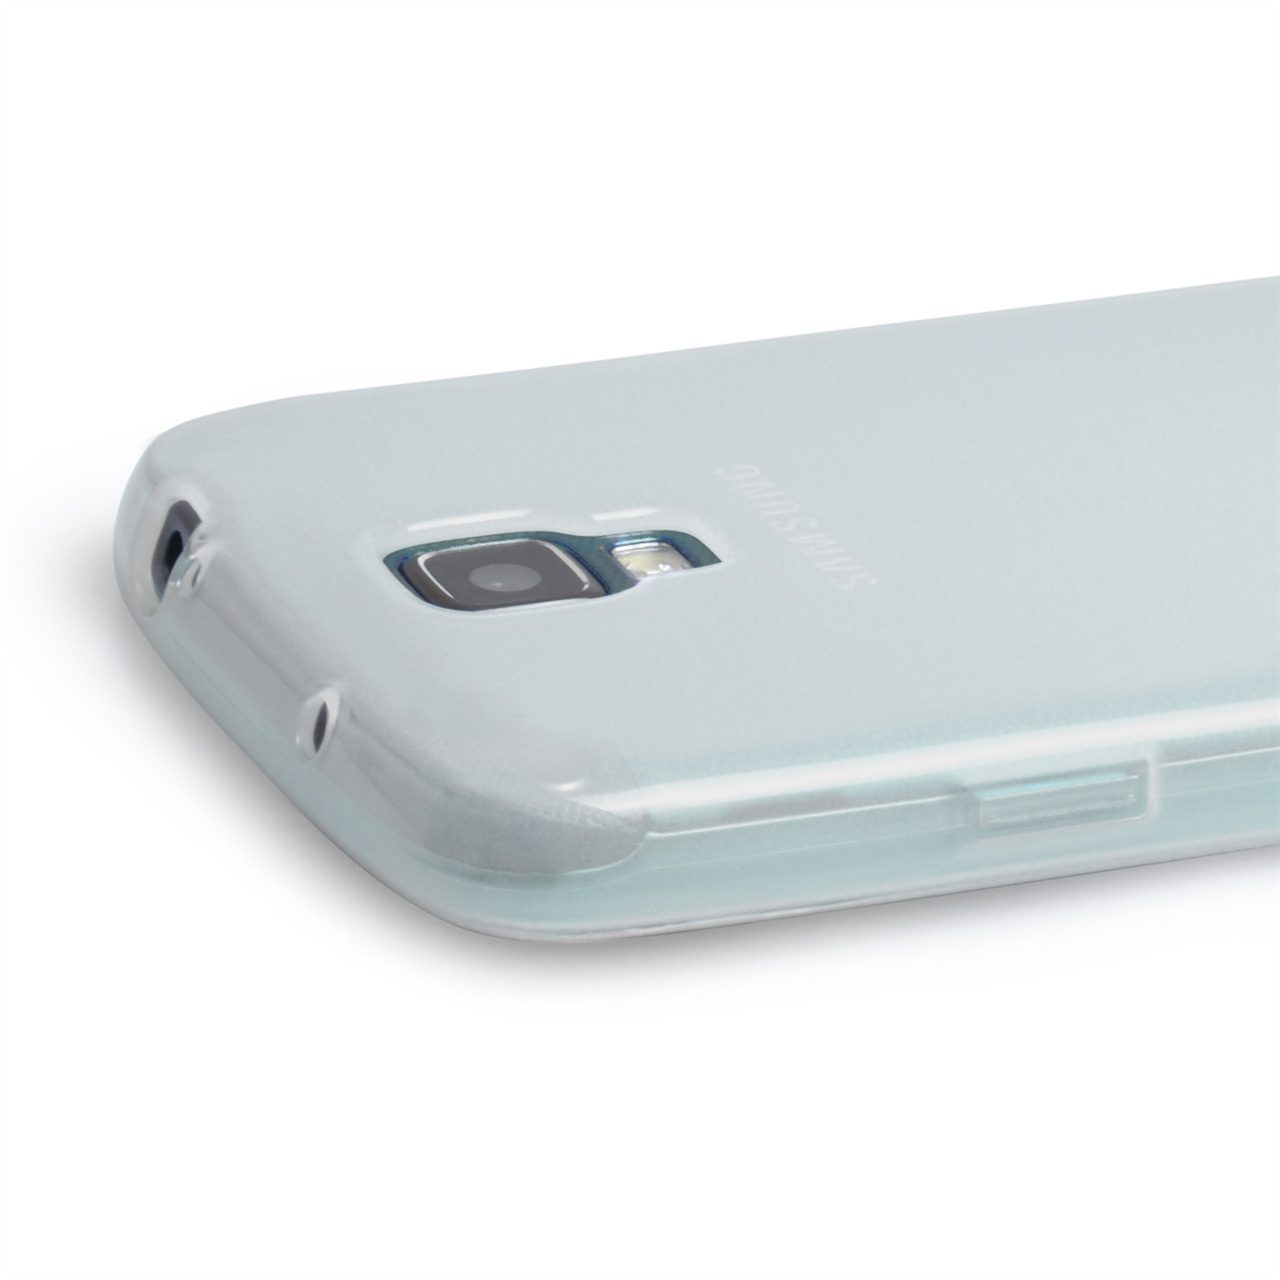 YouSave Accessories Samsung Galaxy S4 Active Clear Gel Case